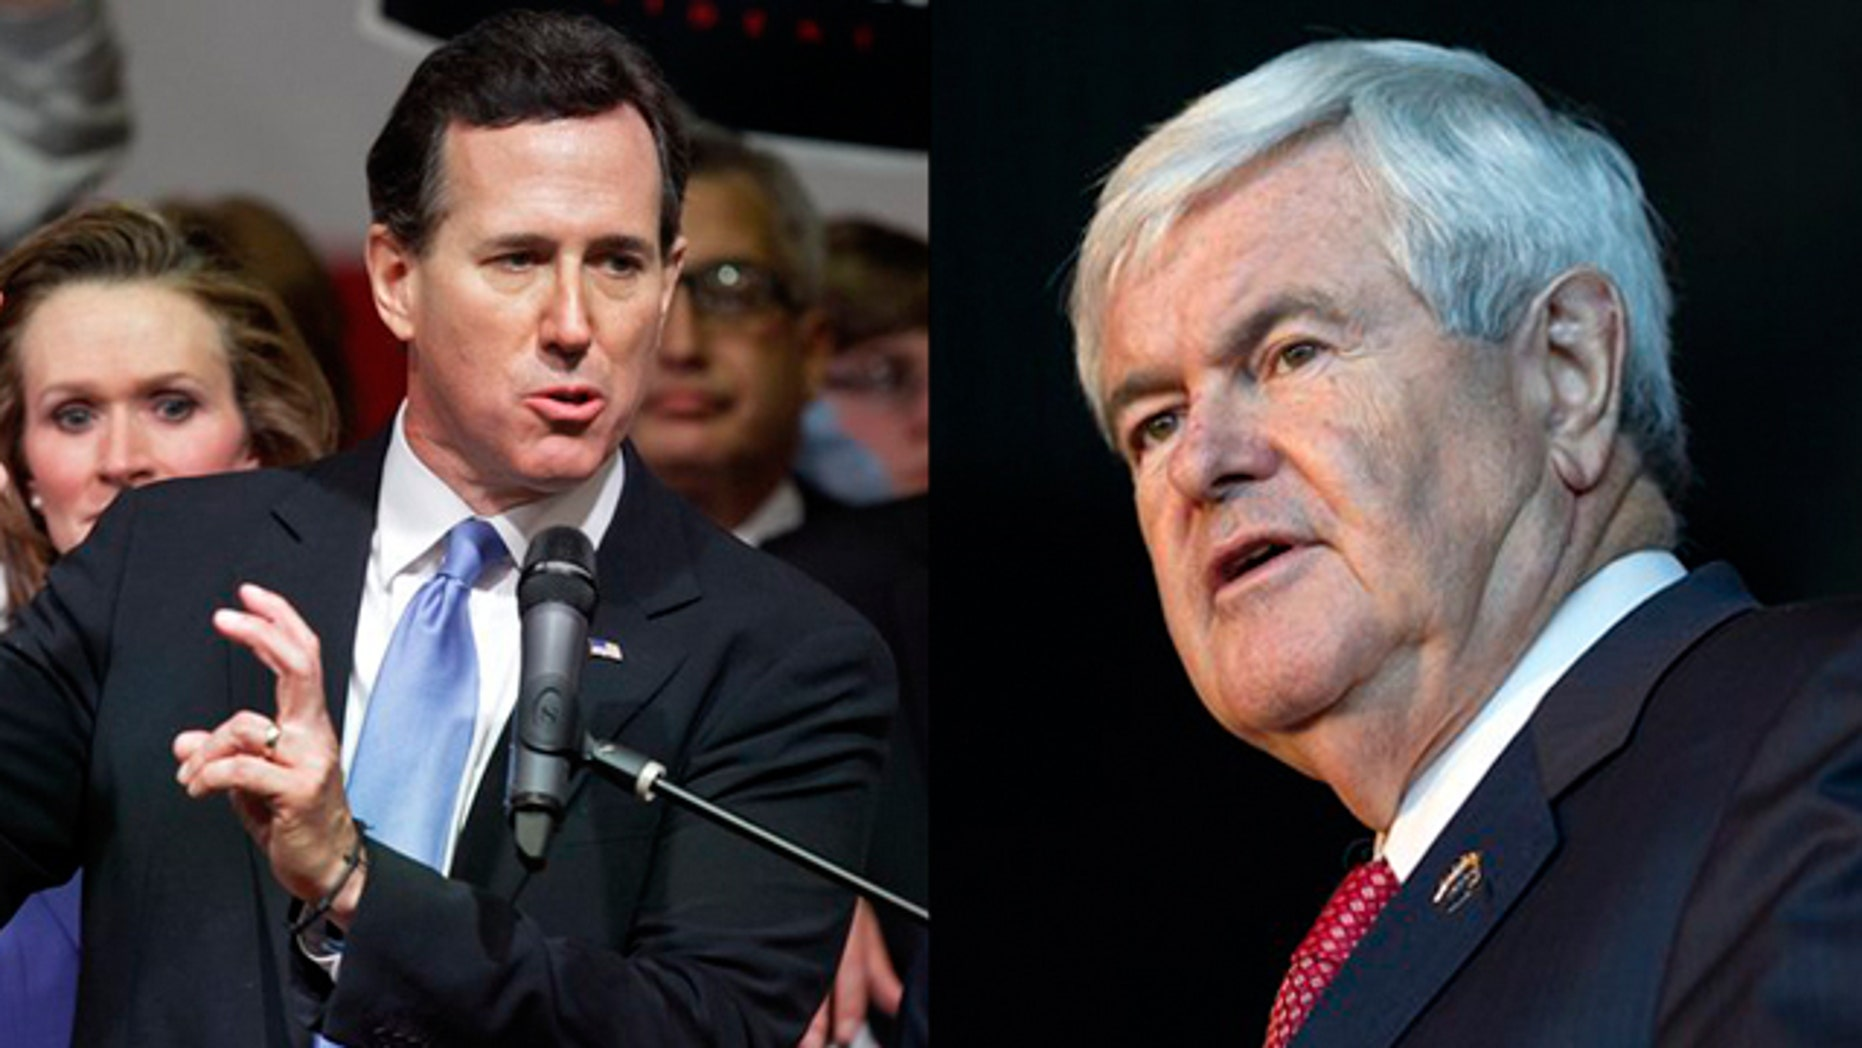 March 6: Rick Santorum, left, and Newt Gingrich are shown on the campaign trail on Super Tuesday.